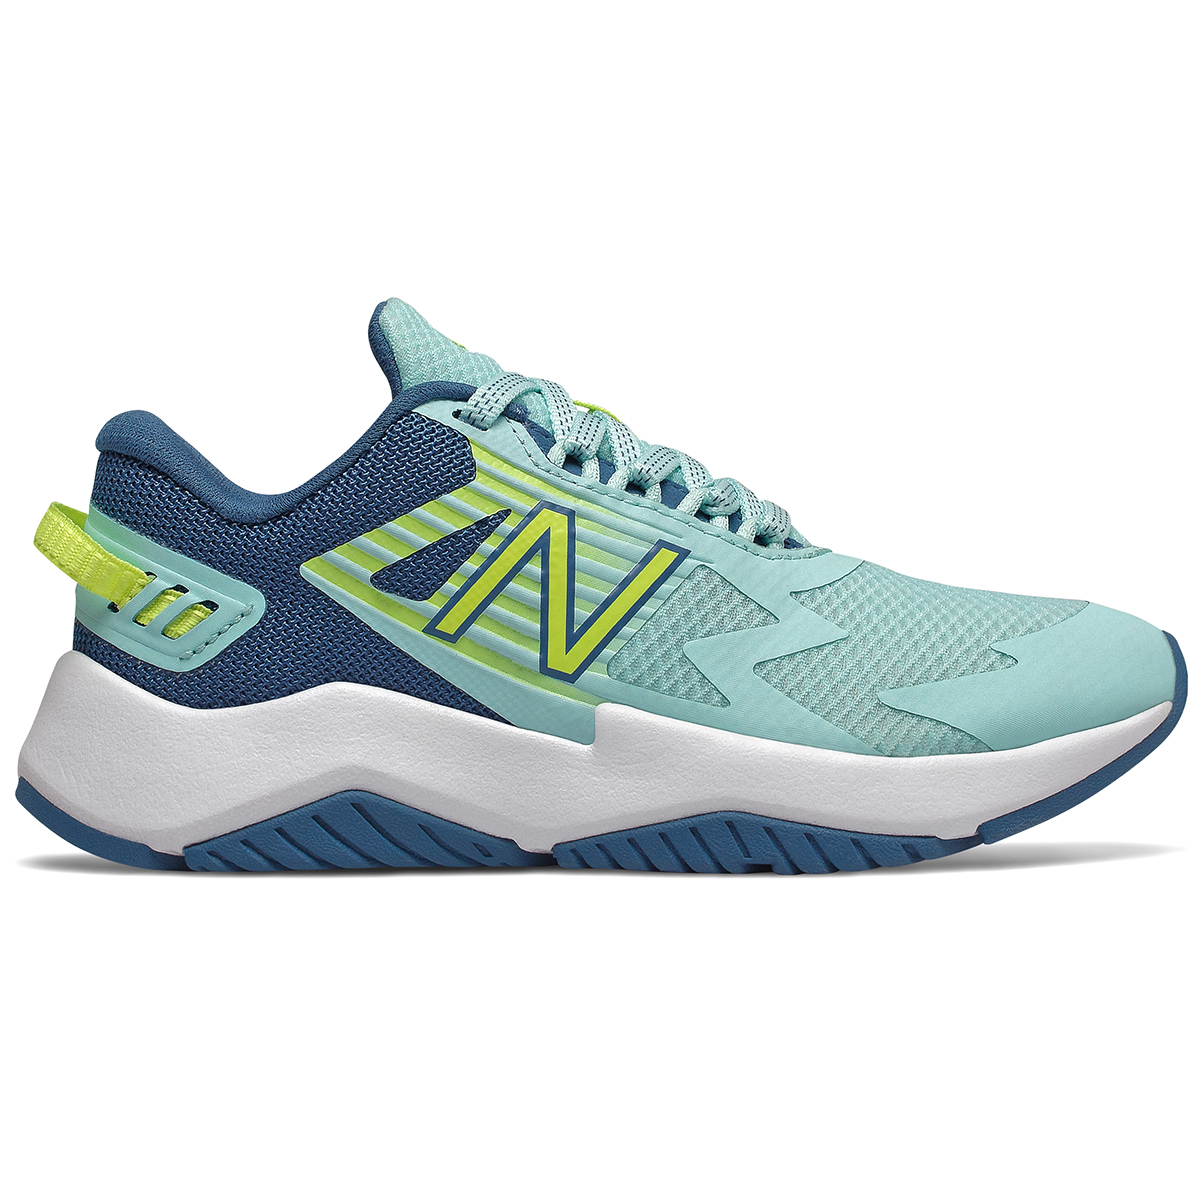 New Balance Big Girls' Rave Running Sneakers - Green, 3.5